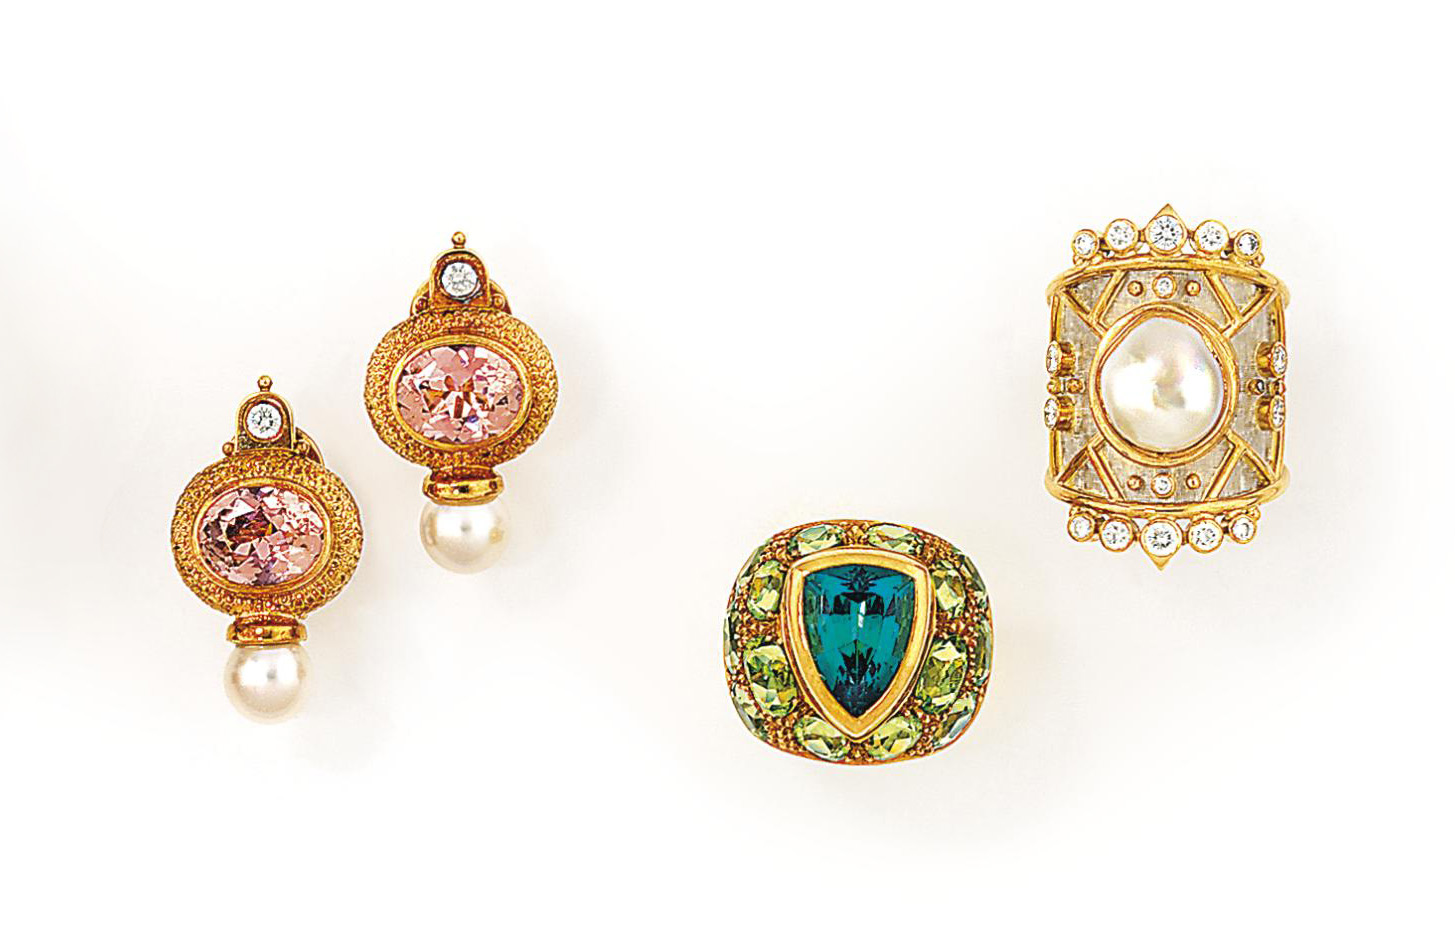 A group of 18ct gold and gem-set jewellery, by Elisabeth Gage